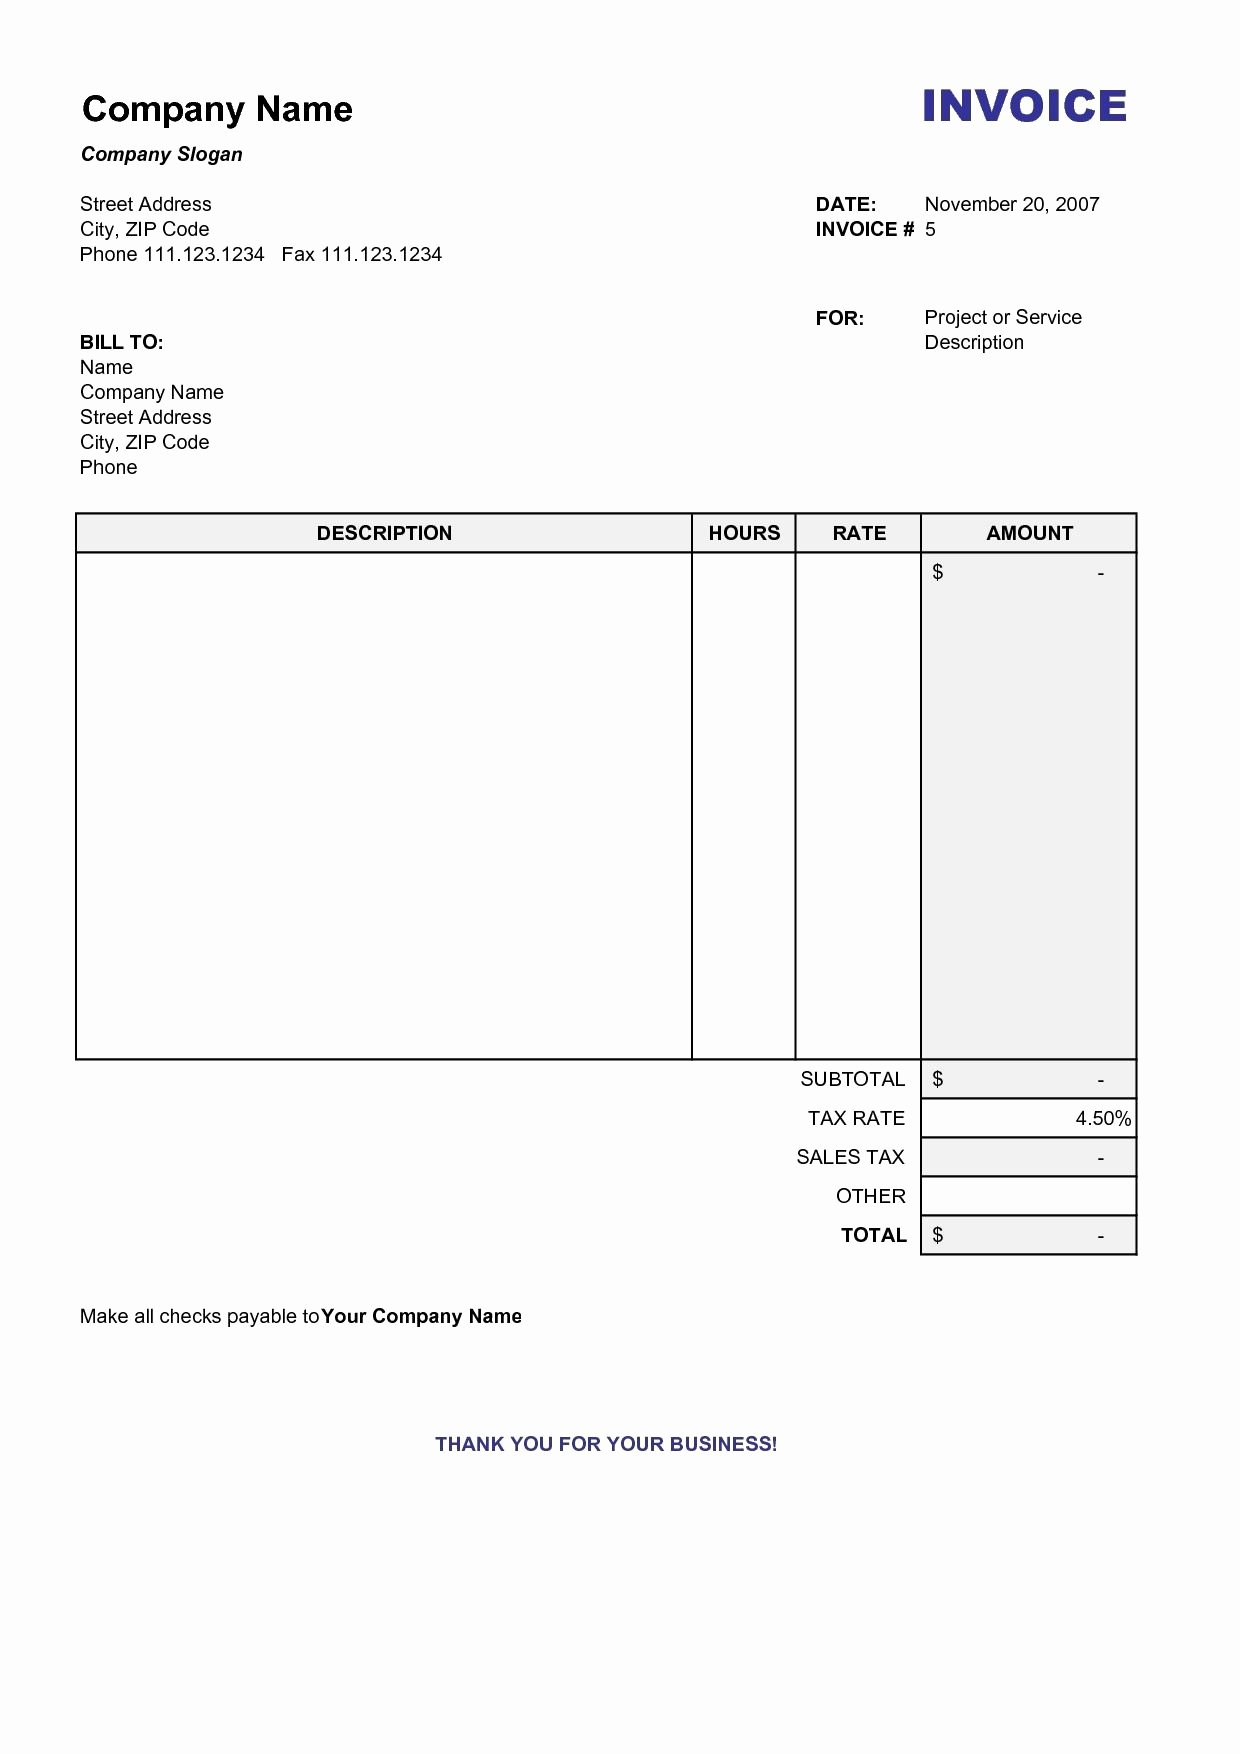 Blank Invoice Template Free Fresh Copy Of A Blank Invoice Invoice Template Free 2016 Copy Of